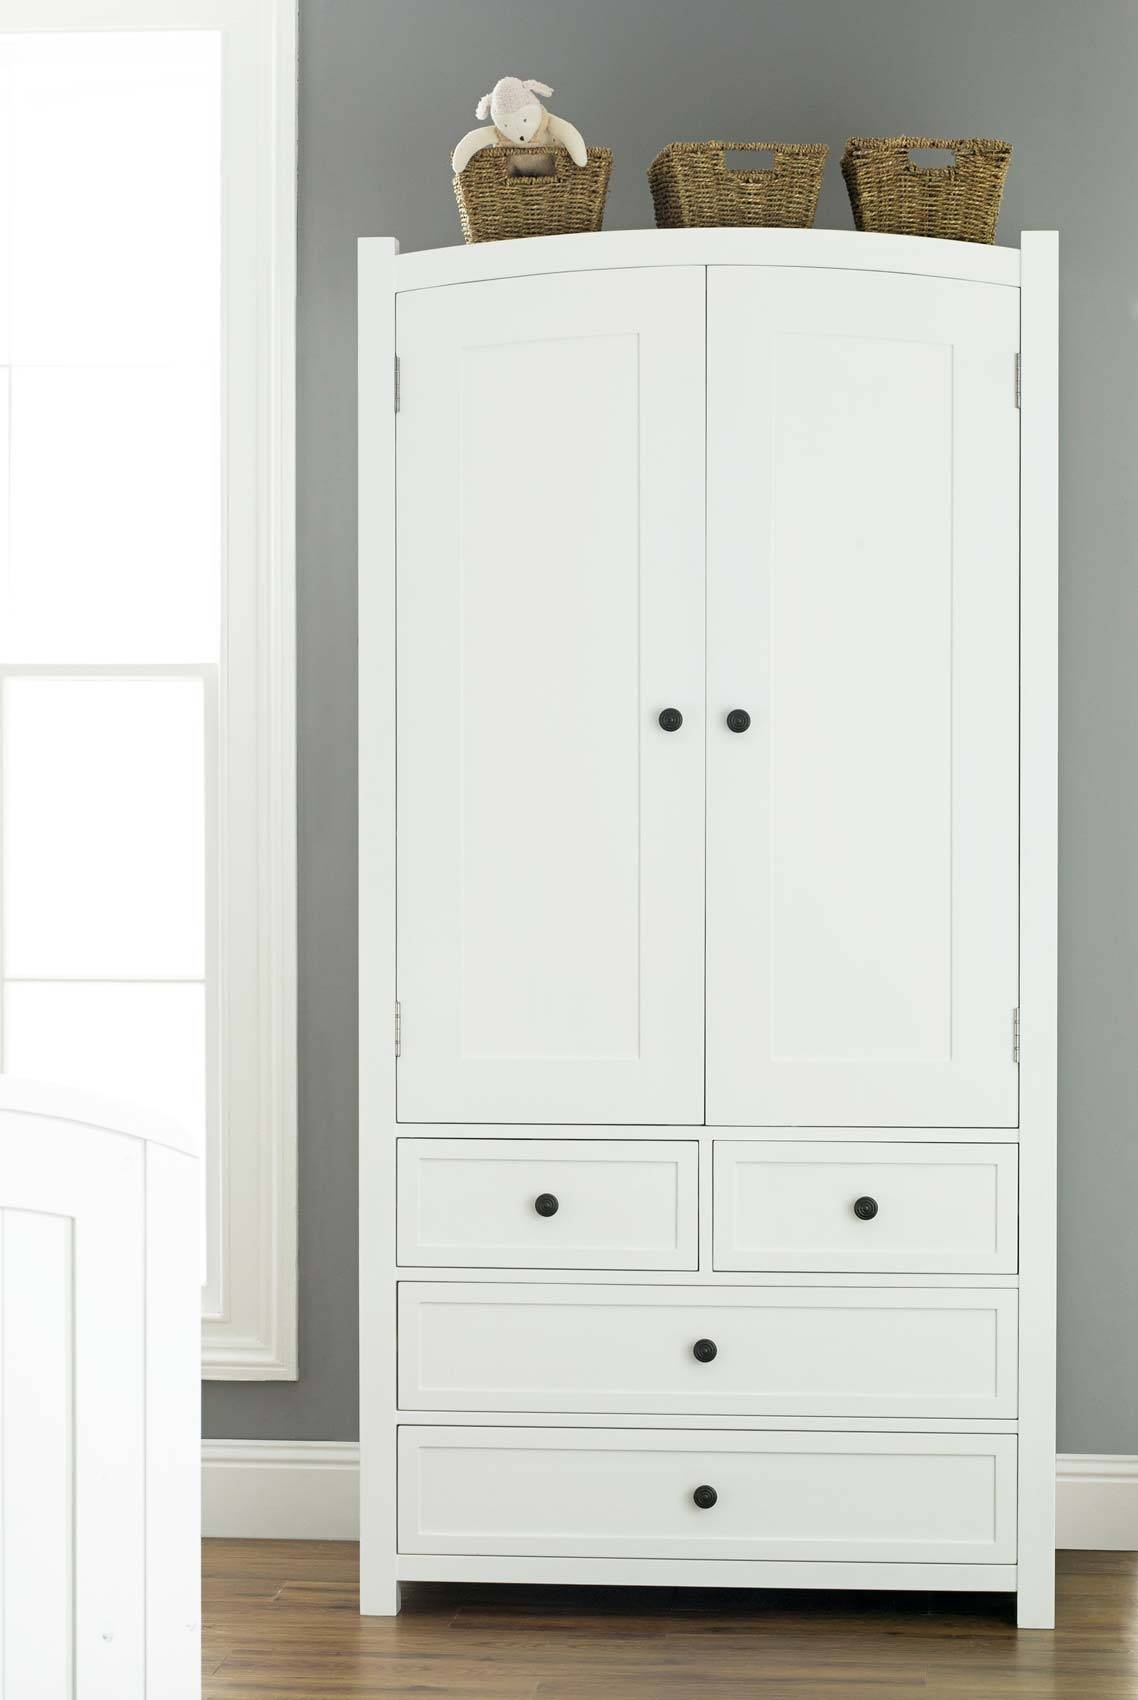 Wardrobe : 52 Archaicawful Wooden White Wardrobe Image Ideas White with regard to White Double Wardrobes With Drawers (Image 13 of 15)